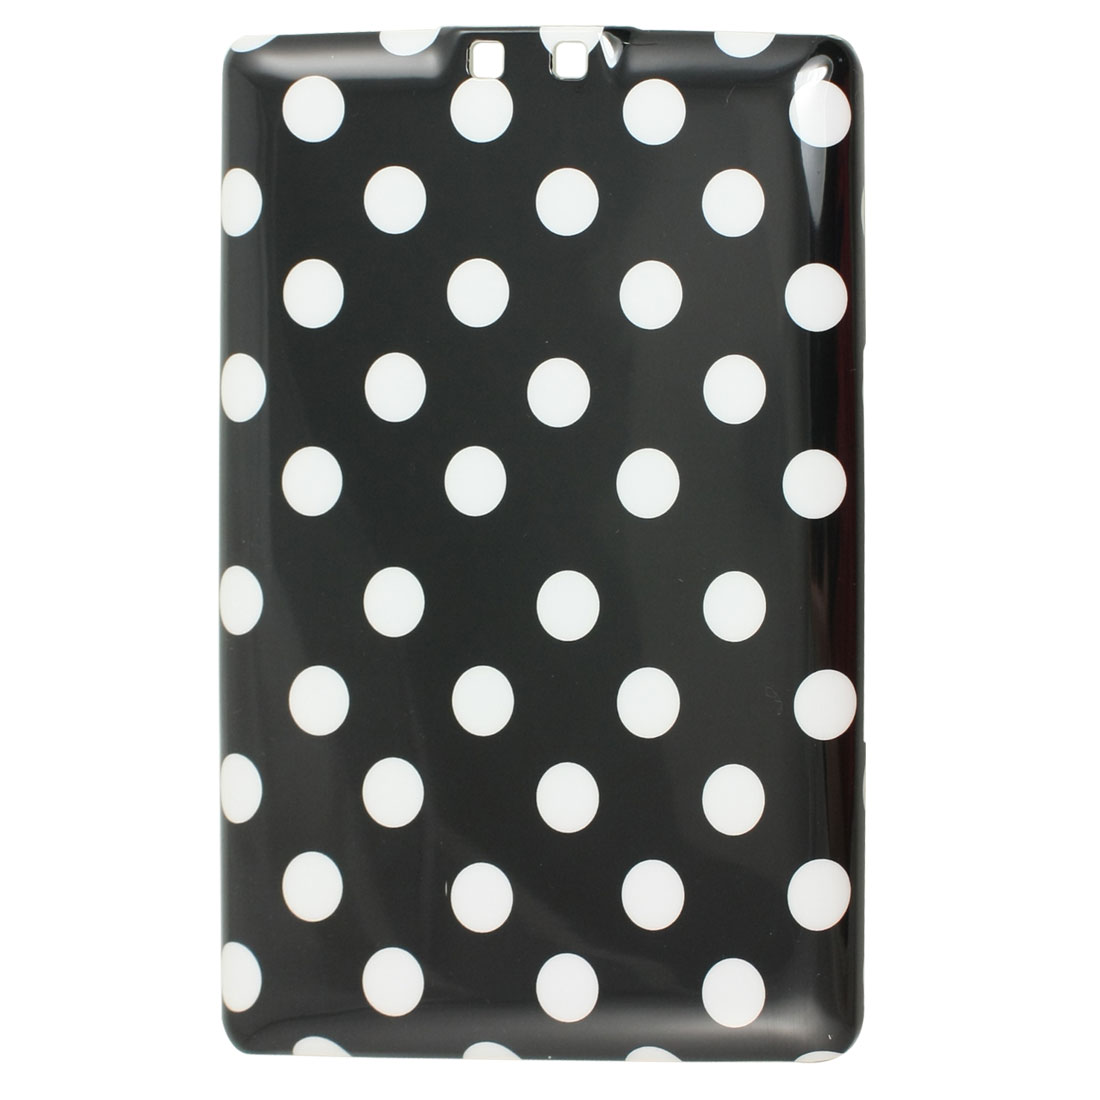 IMD White Dots Print Black Plastic Back Cover Case for Amazon Kindle 4